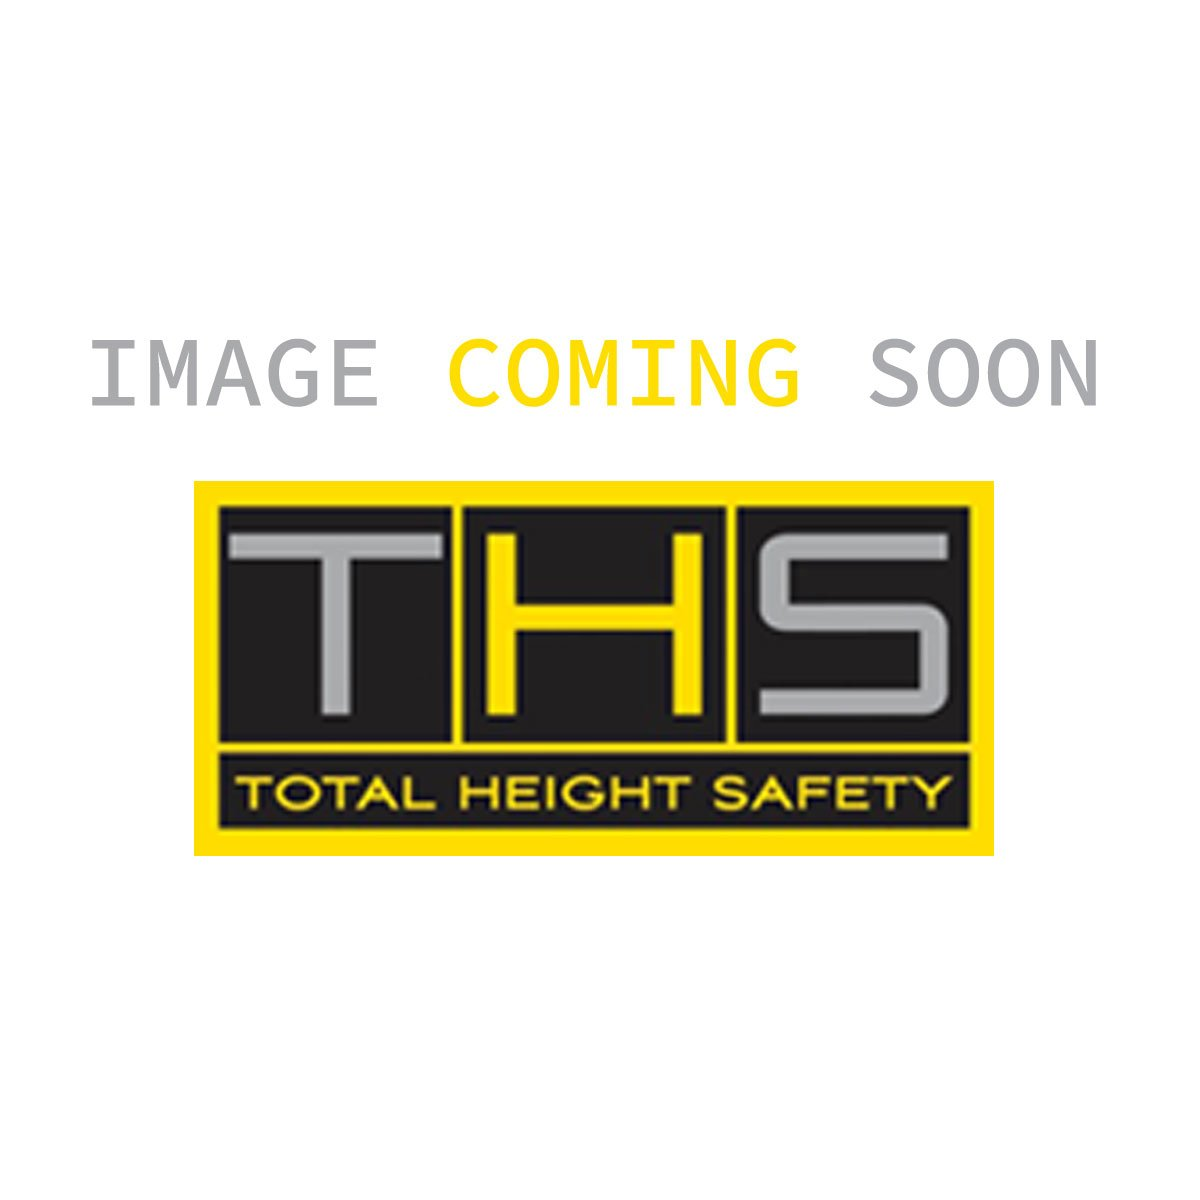 Hauling Kits & Progress Capture Pulleys - Total Height Safety on